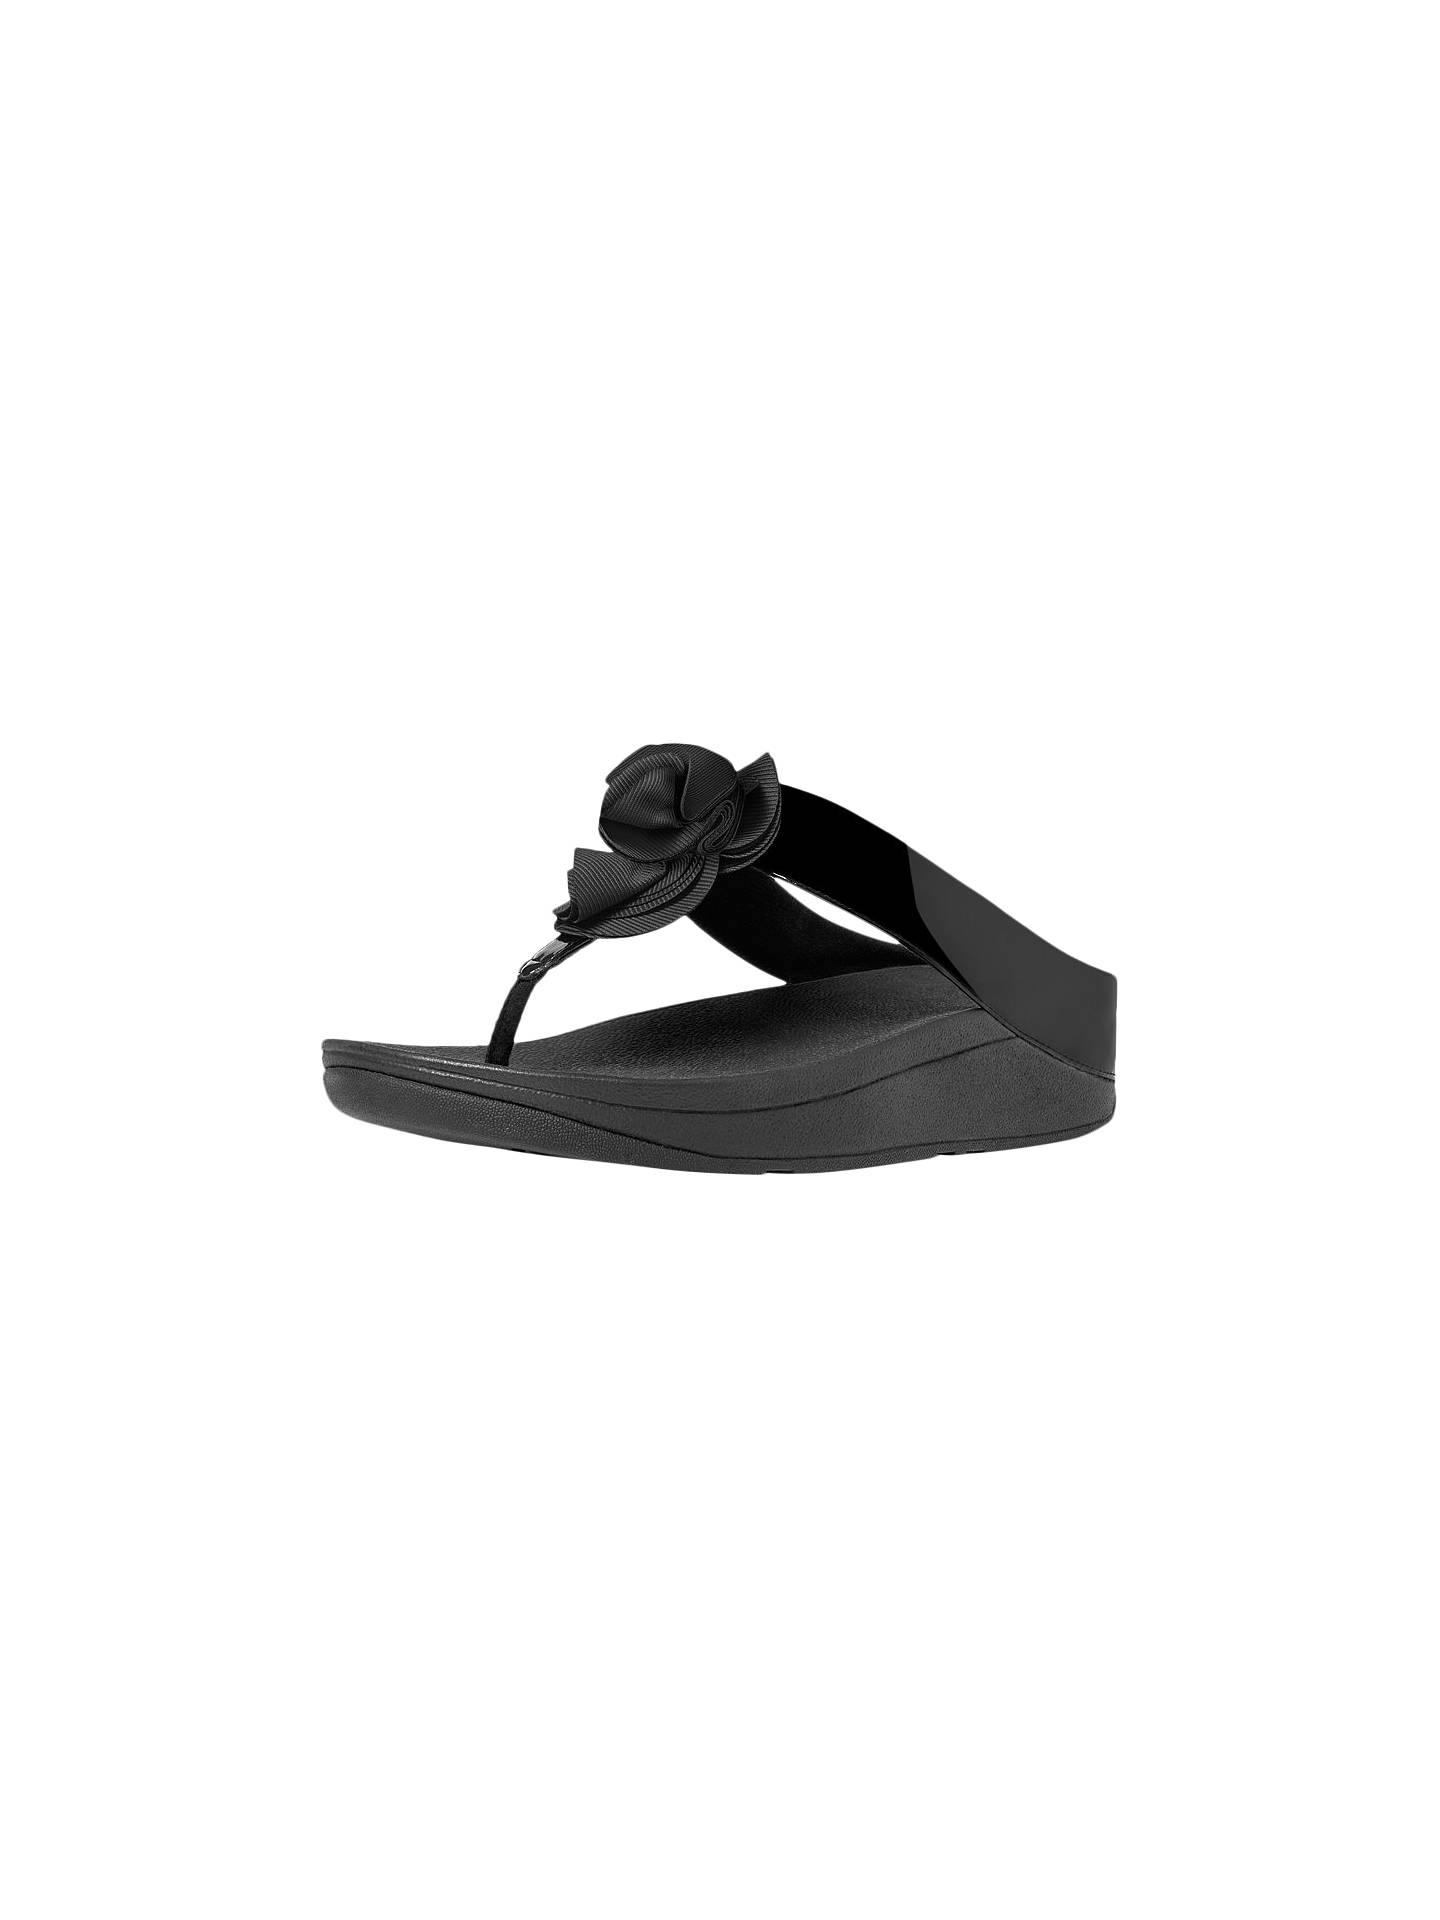 5ed8272f4175a4 Buy FitFlop Florrie Toe Post Sandals